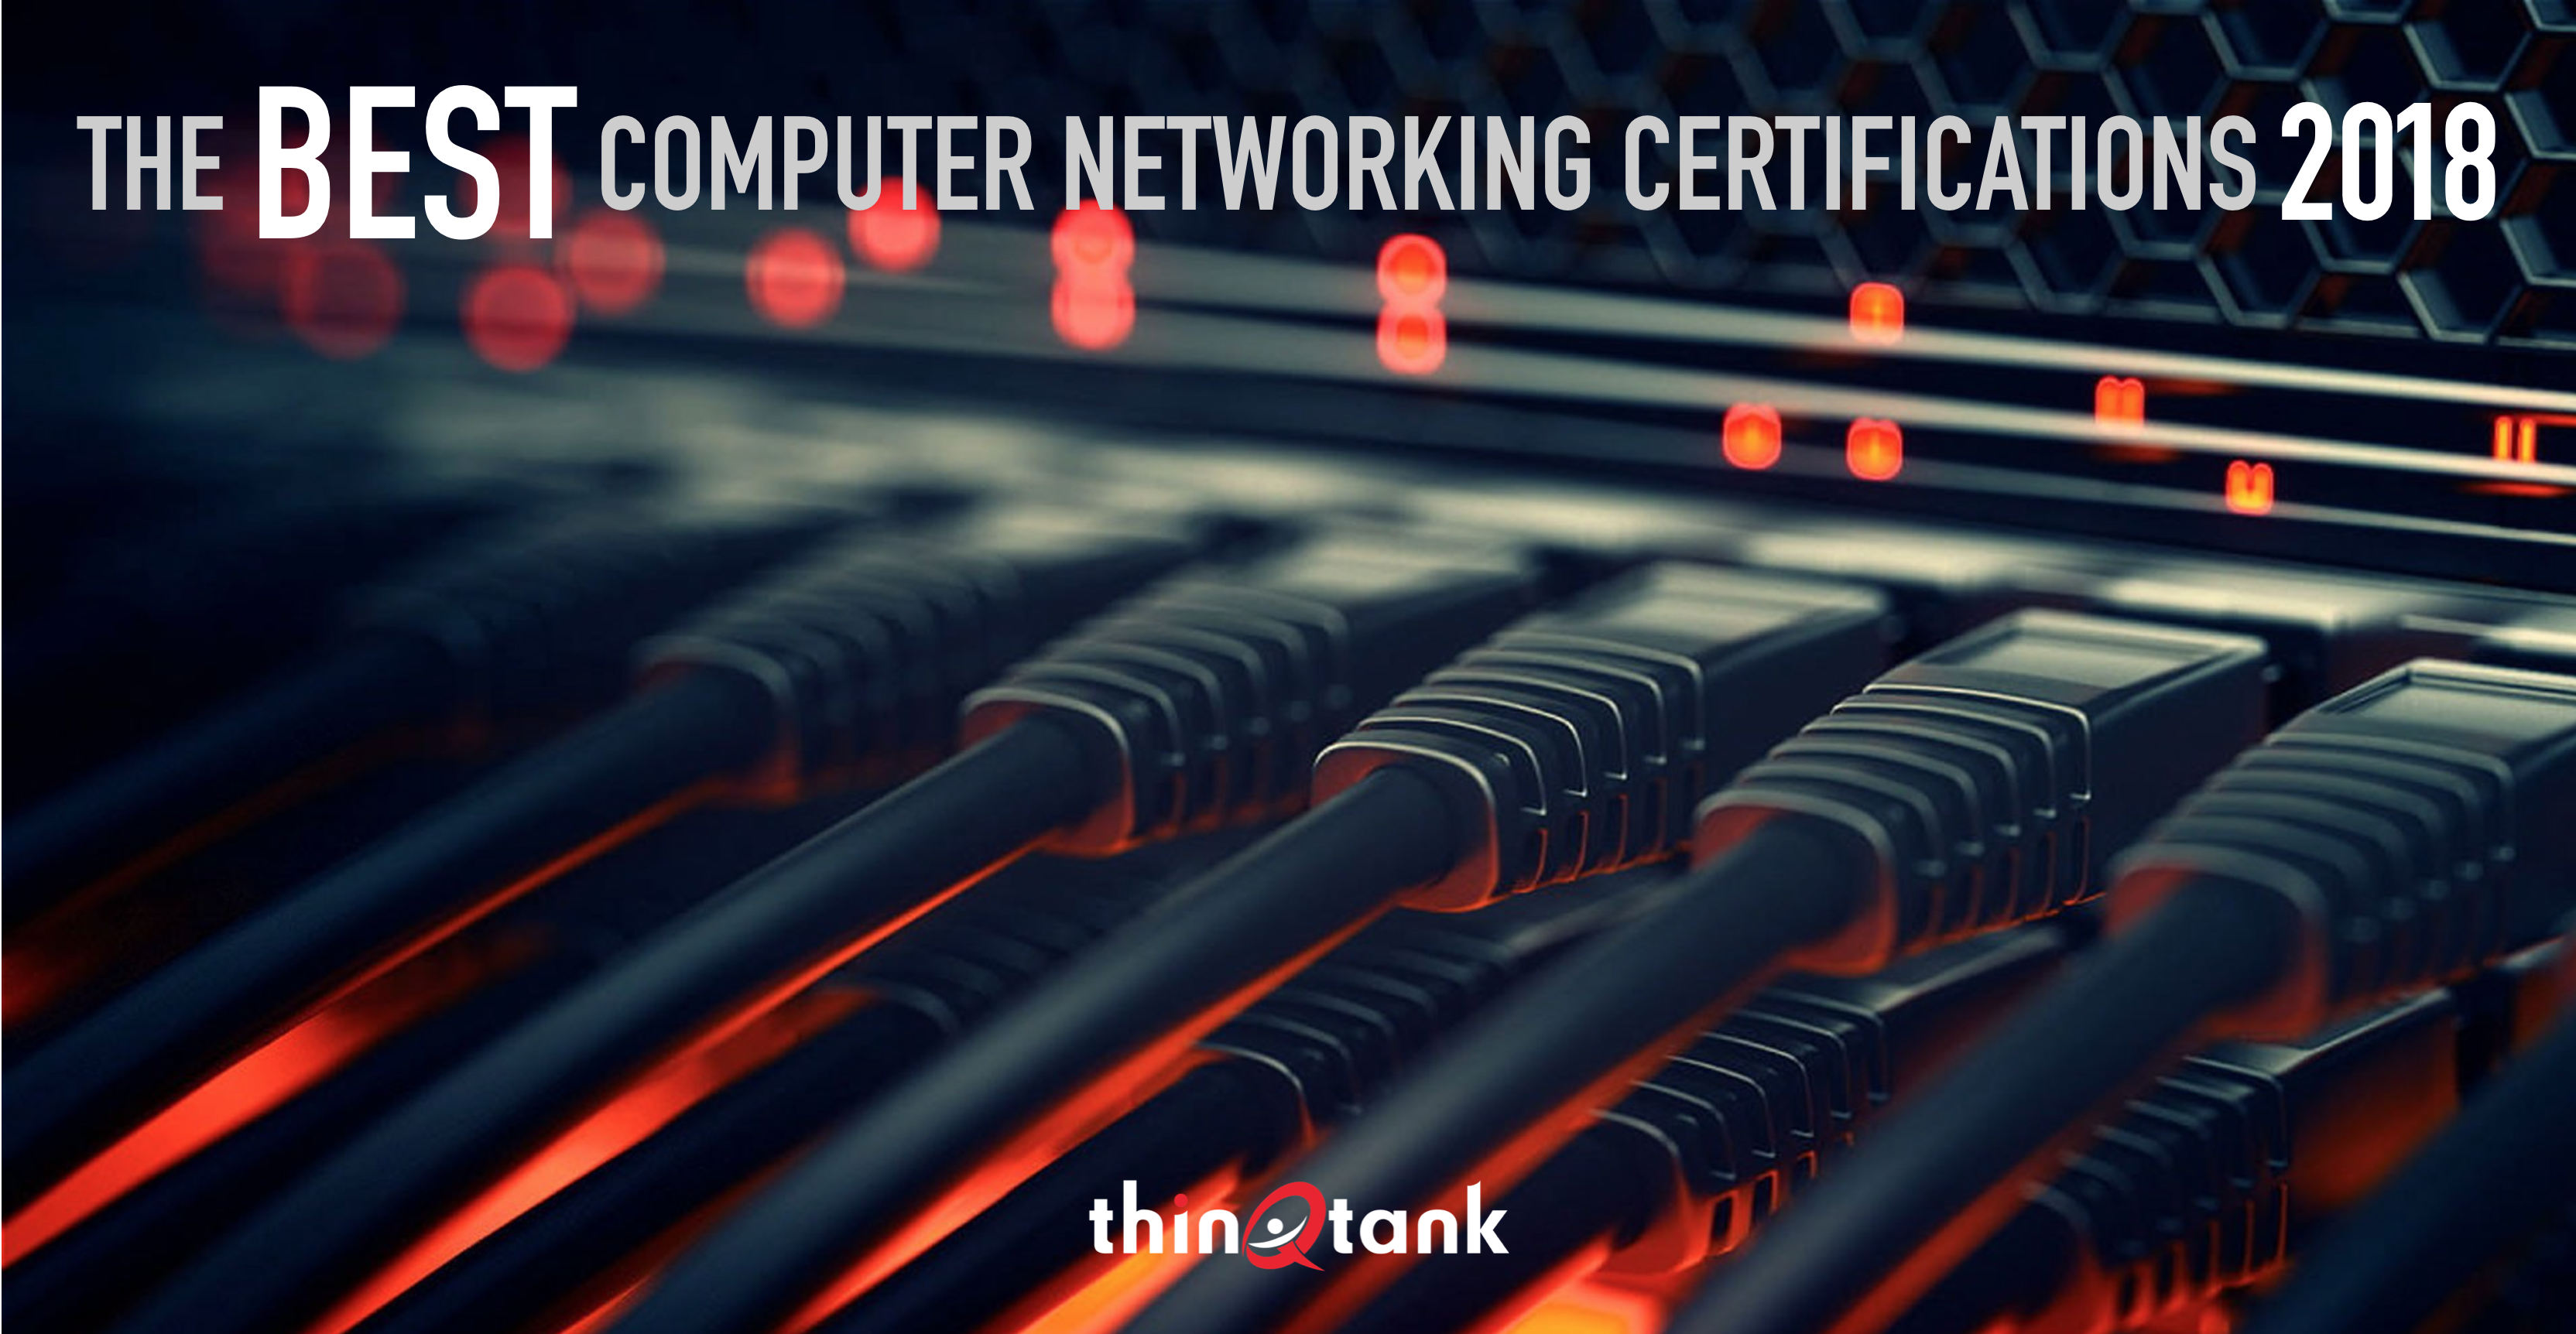 The Best Computer Networking Certifications For 2018 Thinqtank